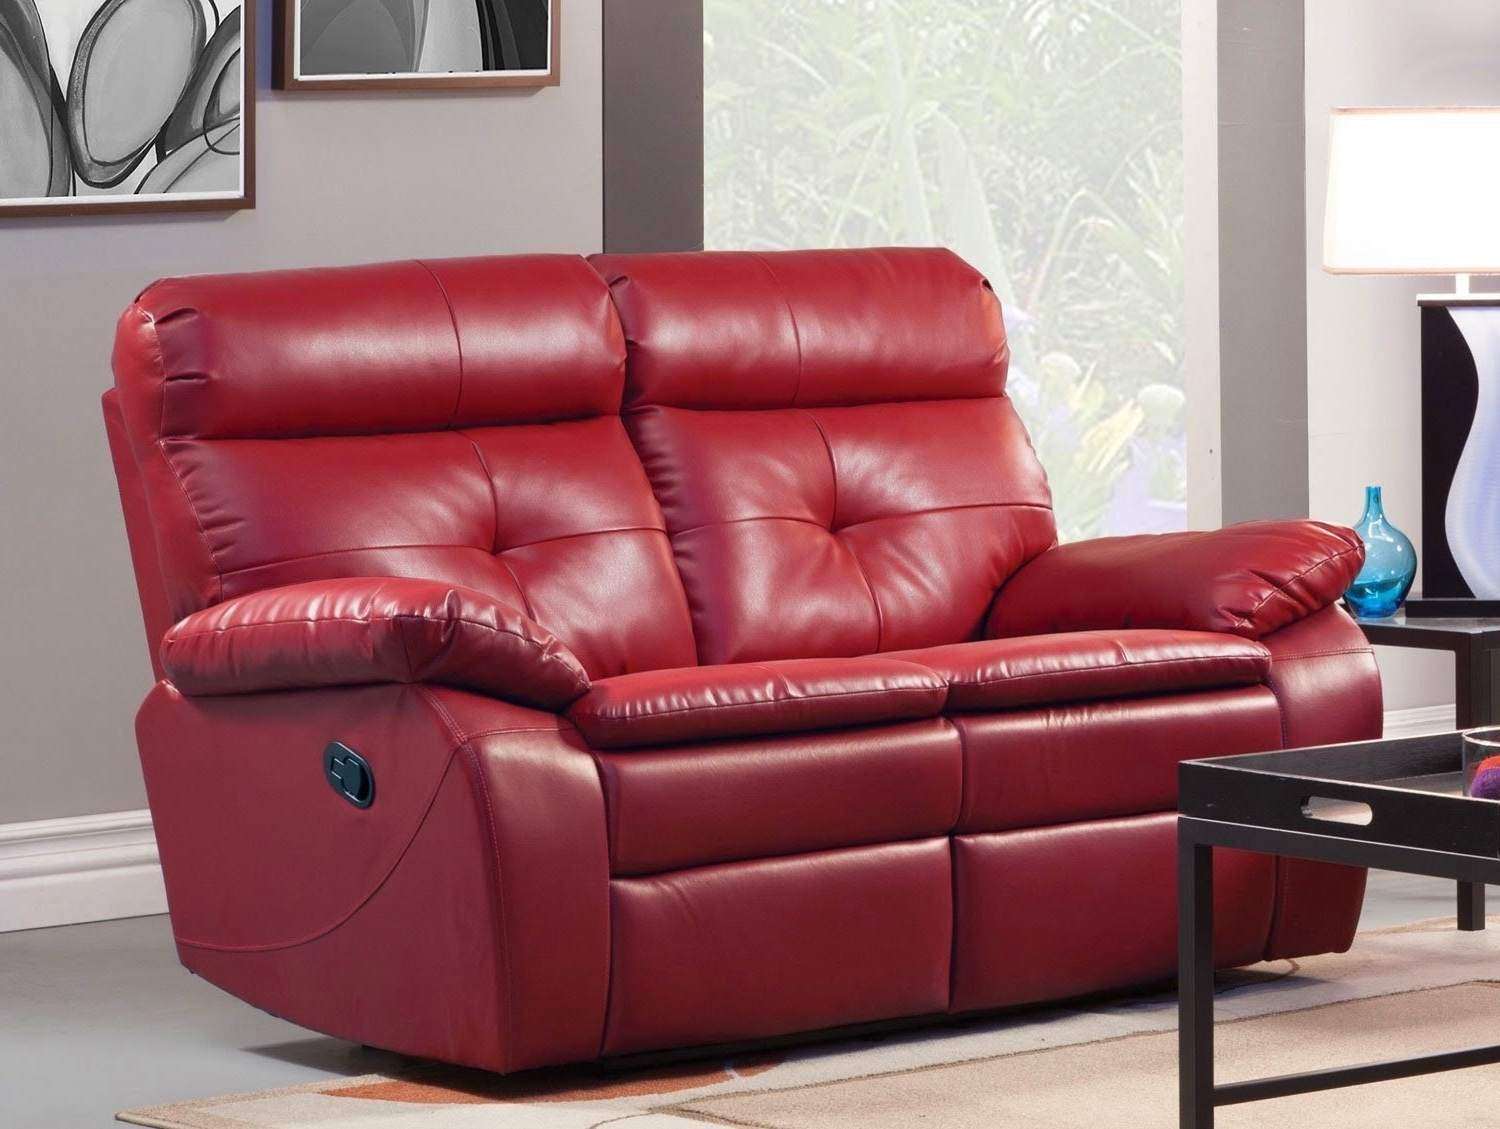 Red Leather Reclining Sofas And Loveseats Throughout Most Recent The Best Reclining Sofa Reviews: Red Leather Reclining Sofa And (View 7 of 15)